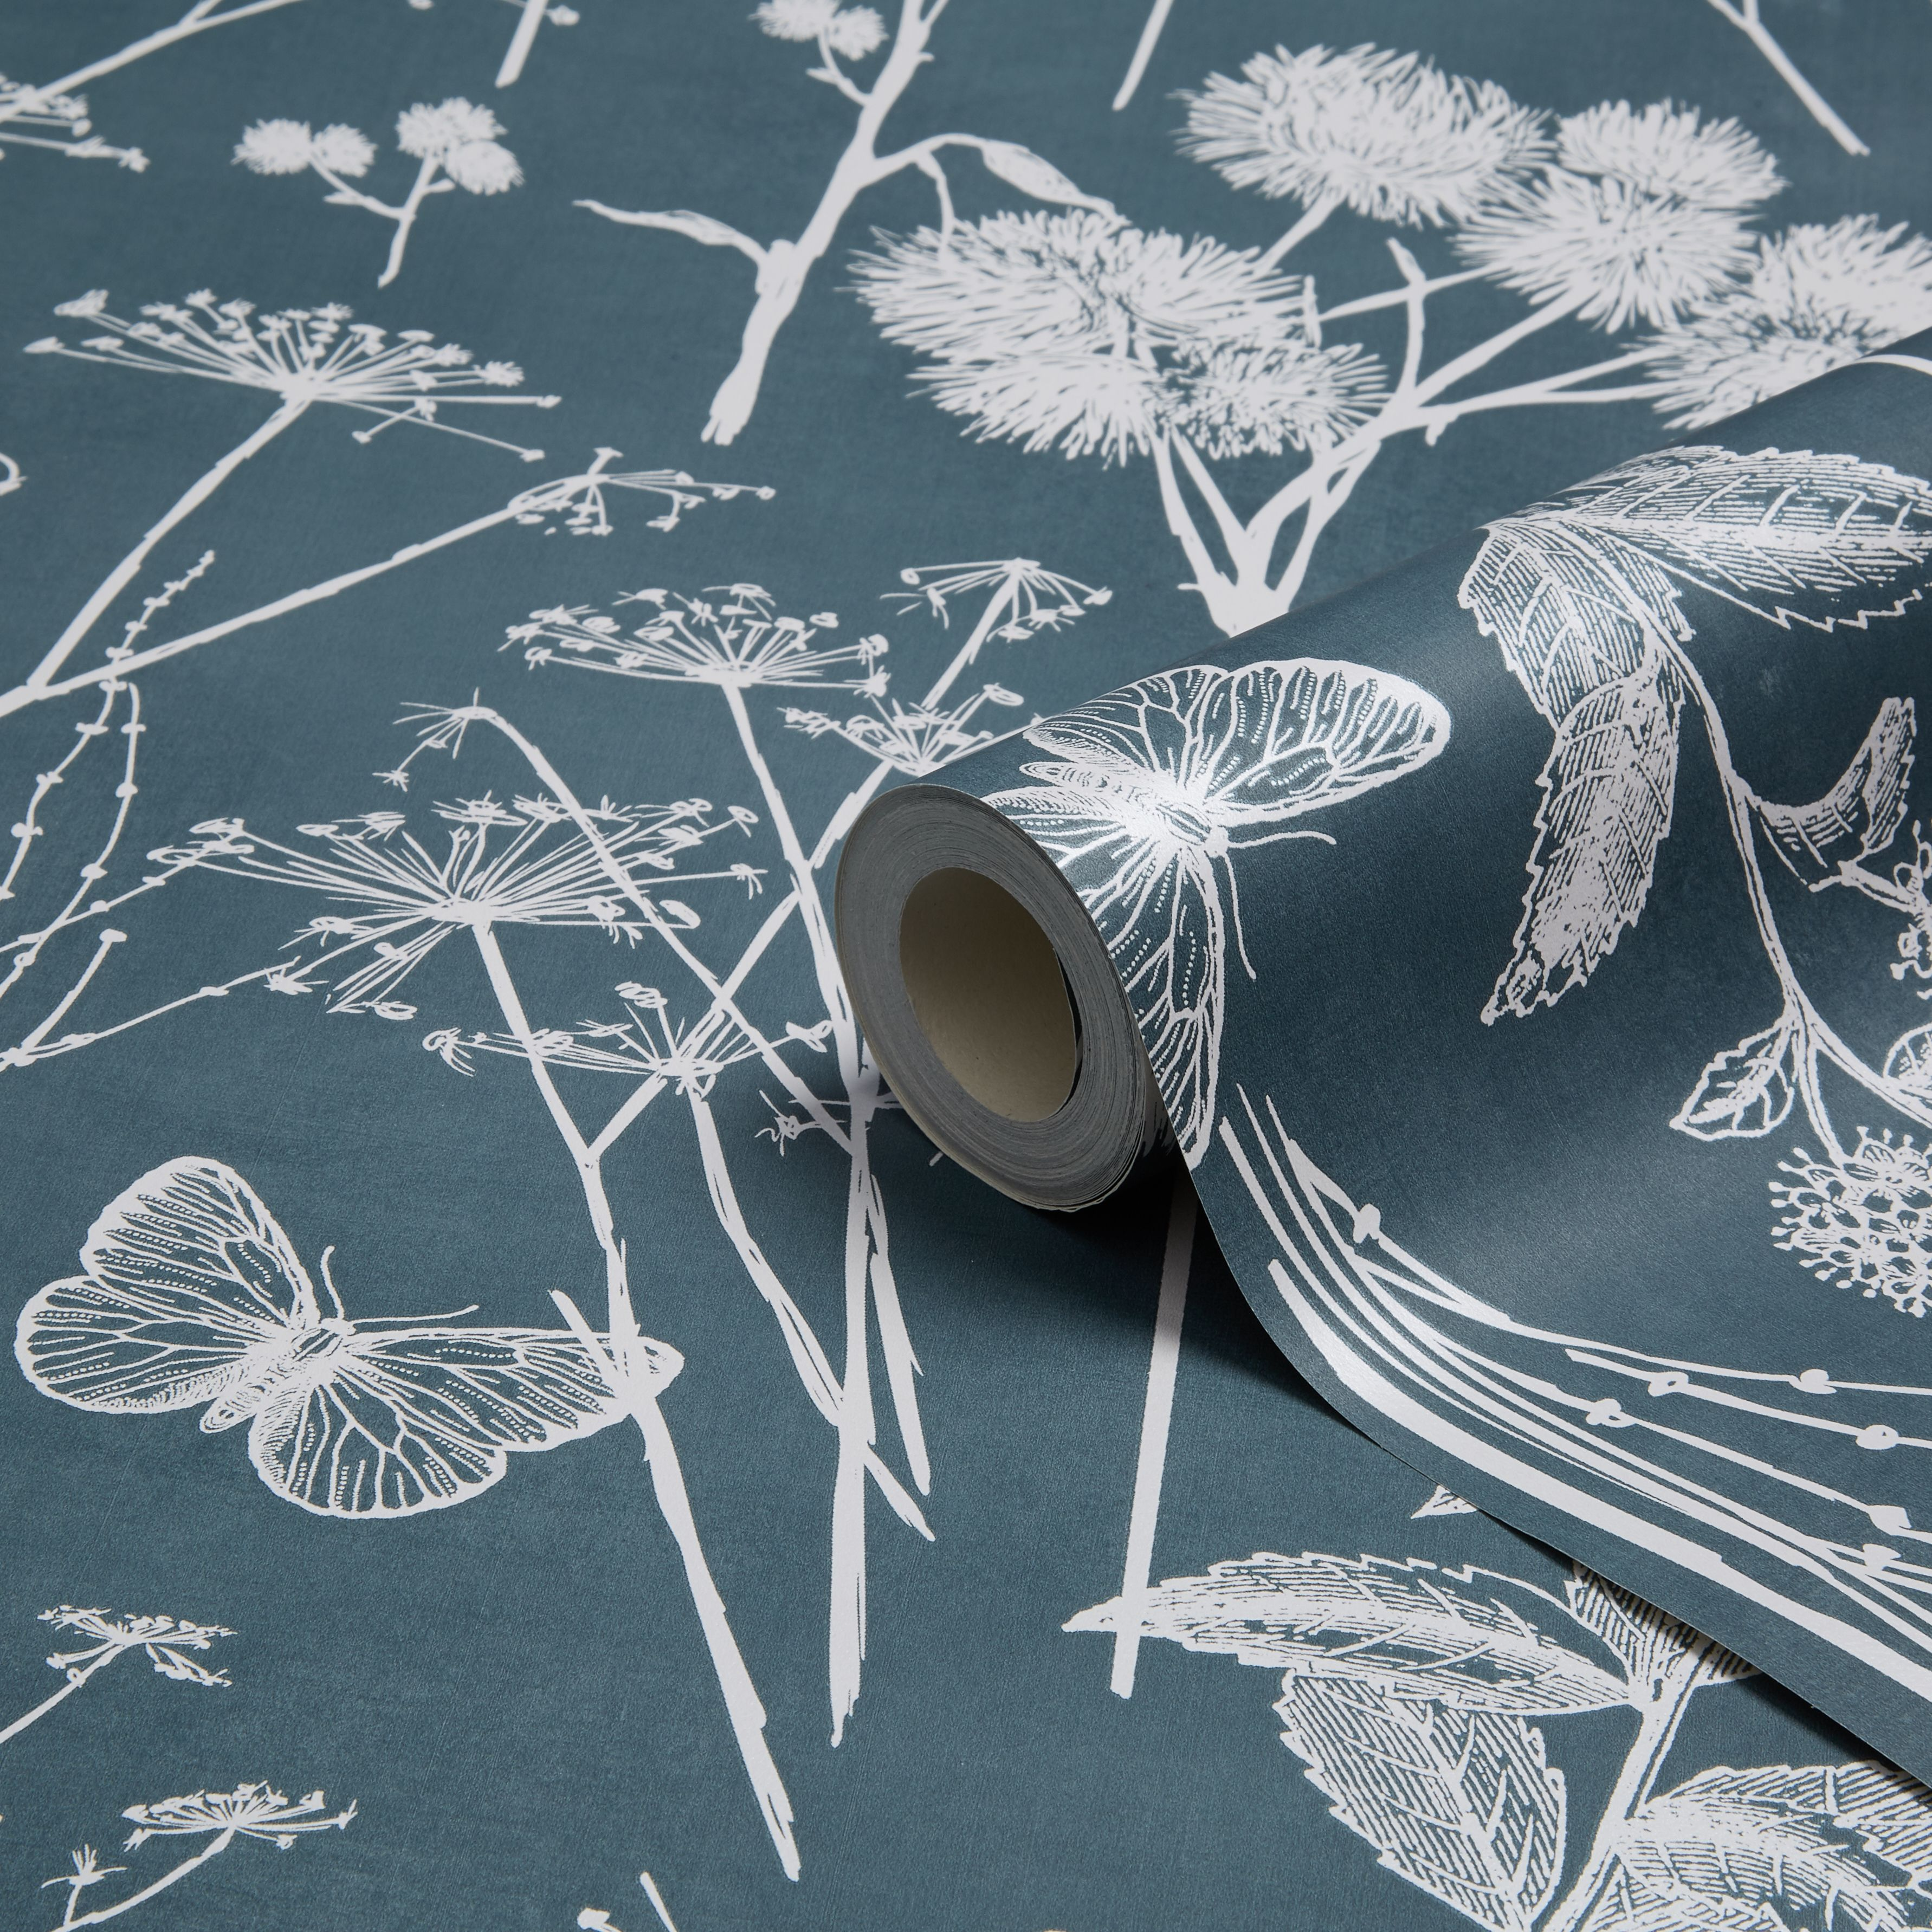 Muriva Botanical Blackboard Teal Foliage Wallpaper